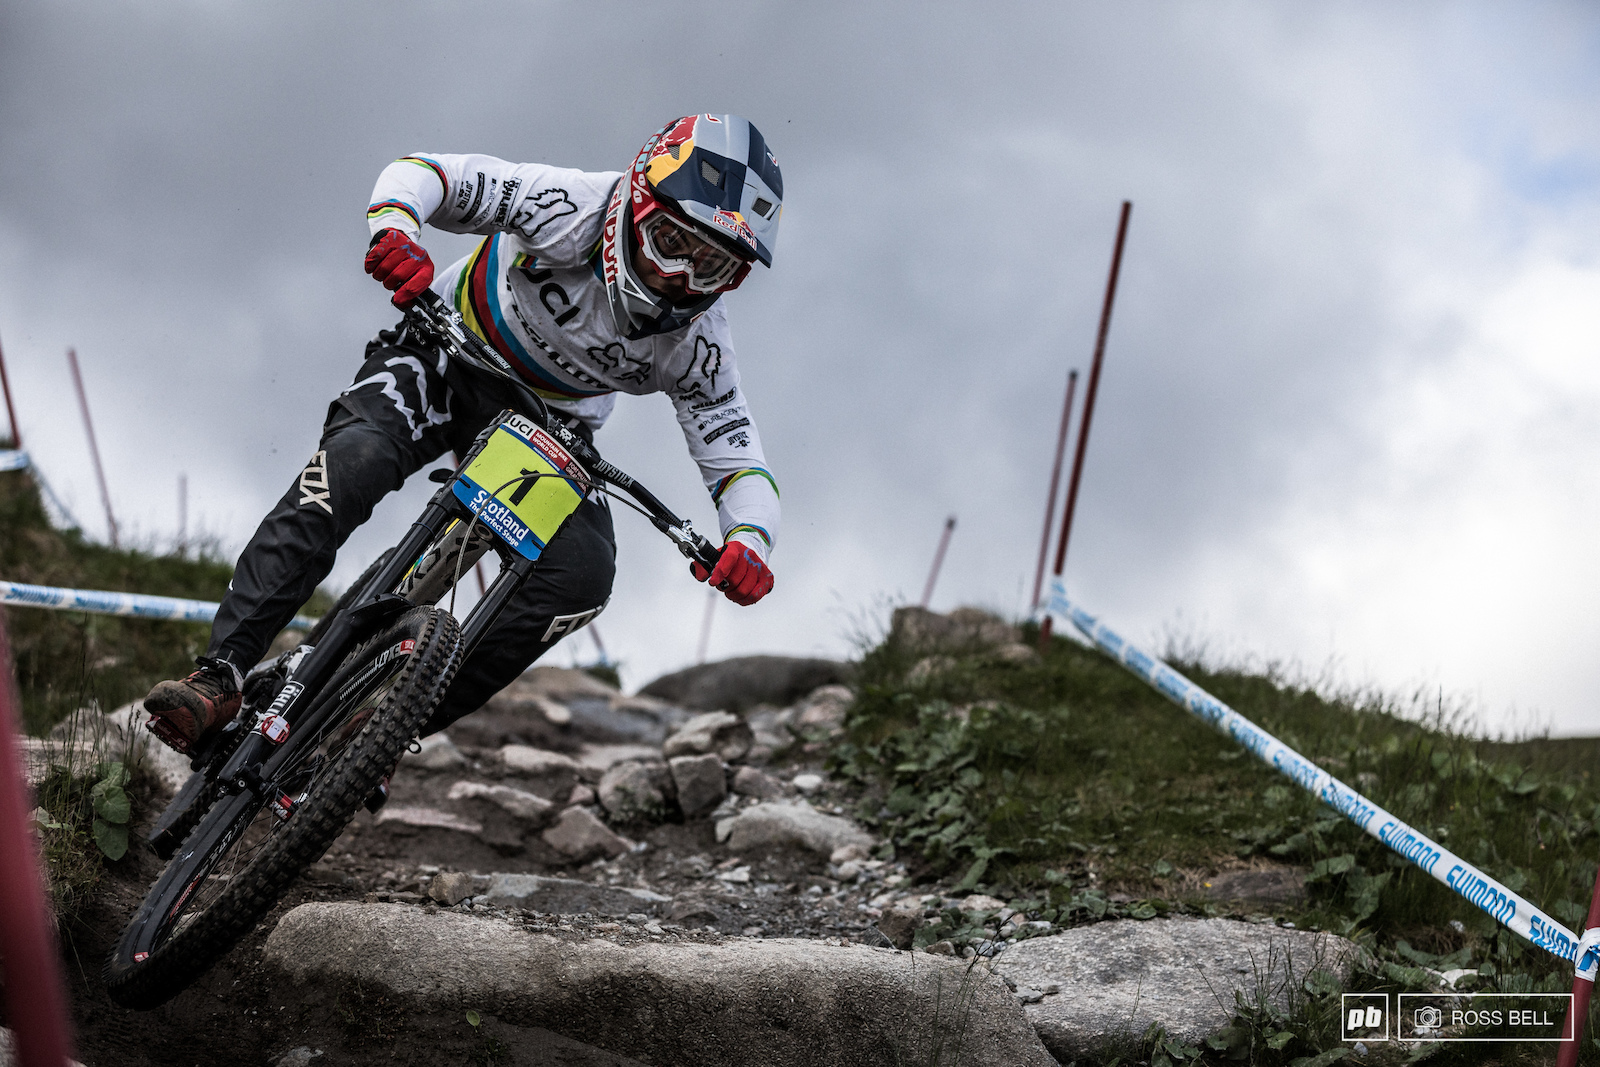 Finn Iles riding the classic track of Fort William complete with the rainbow jersey in 2017.